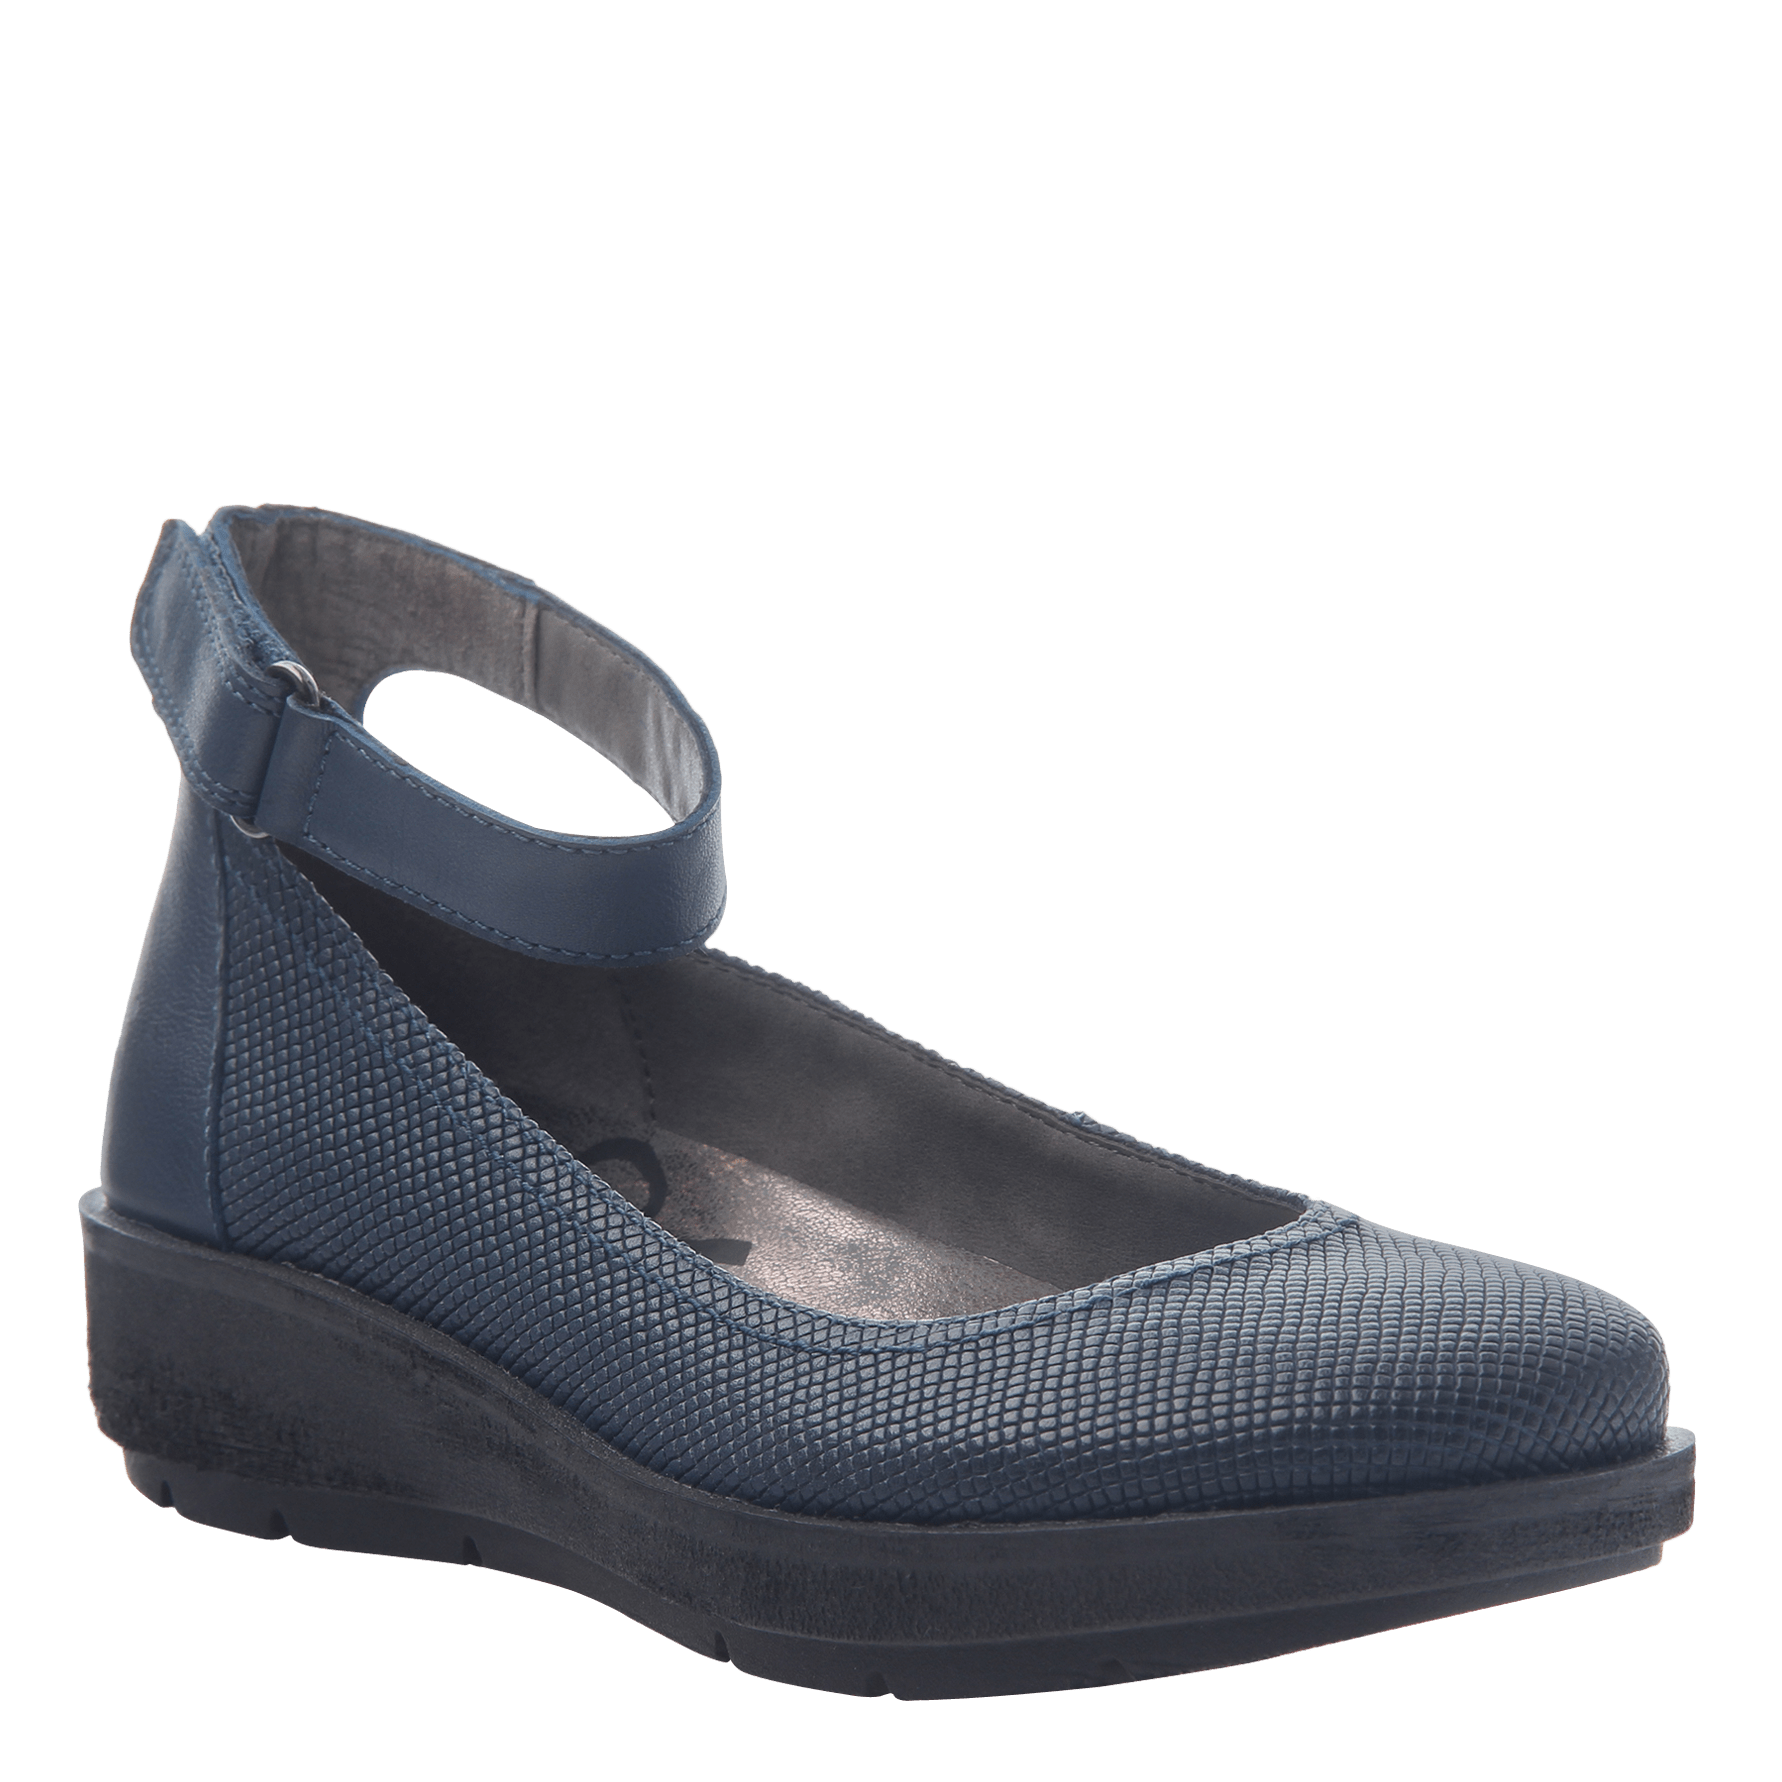 Women's ballet flat the scamper in New Blue